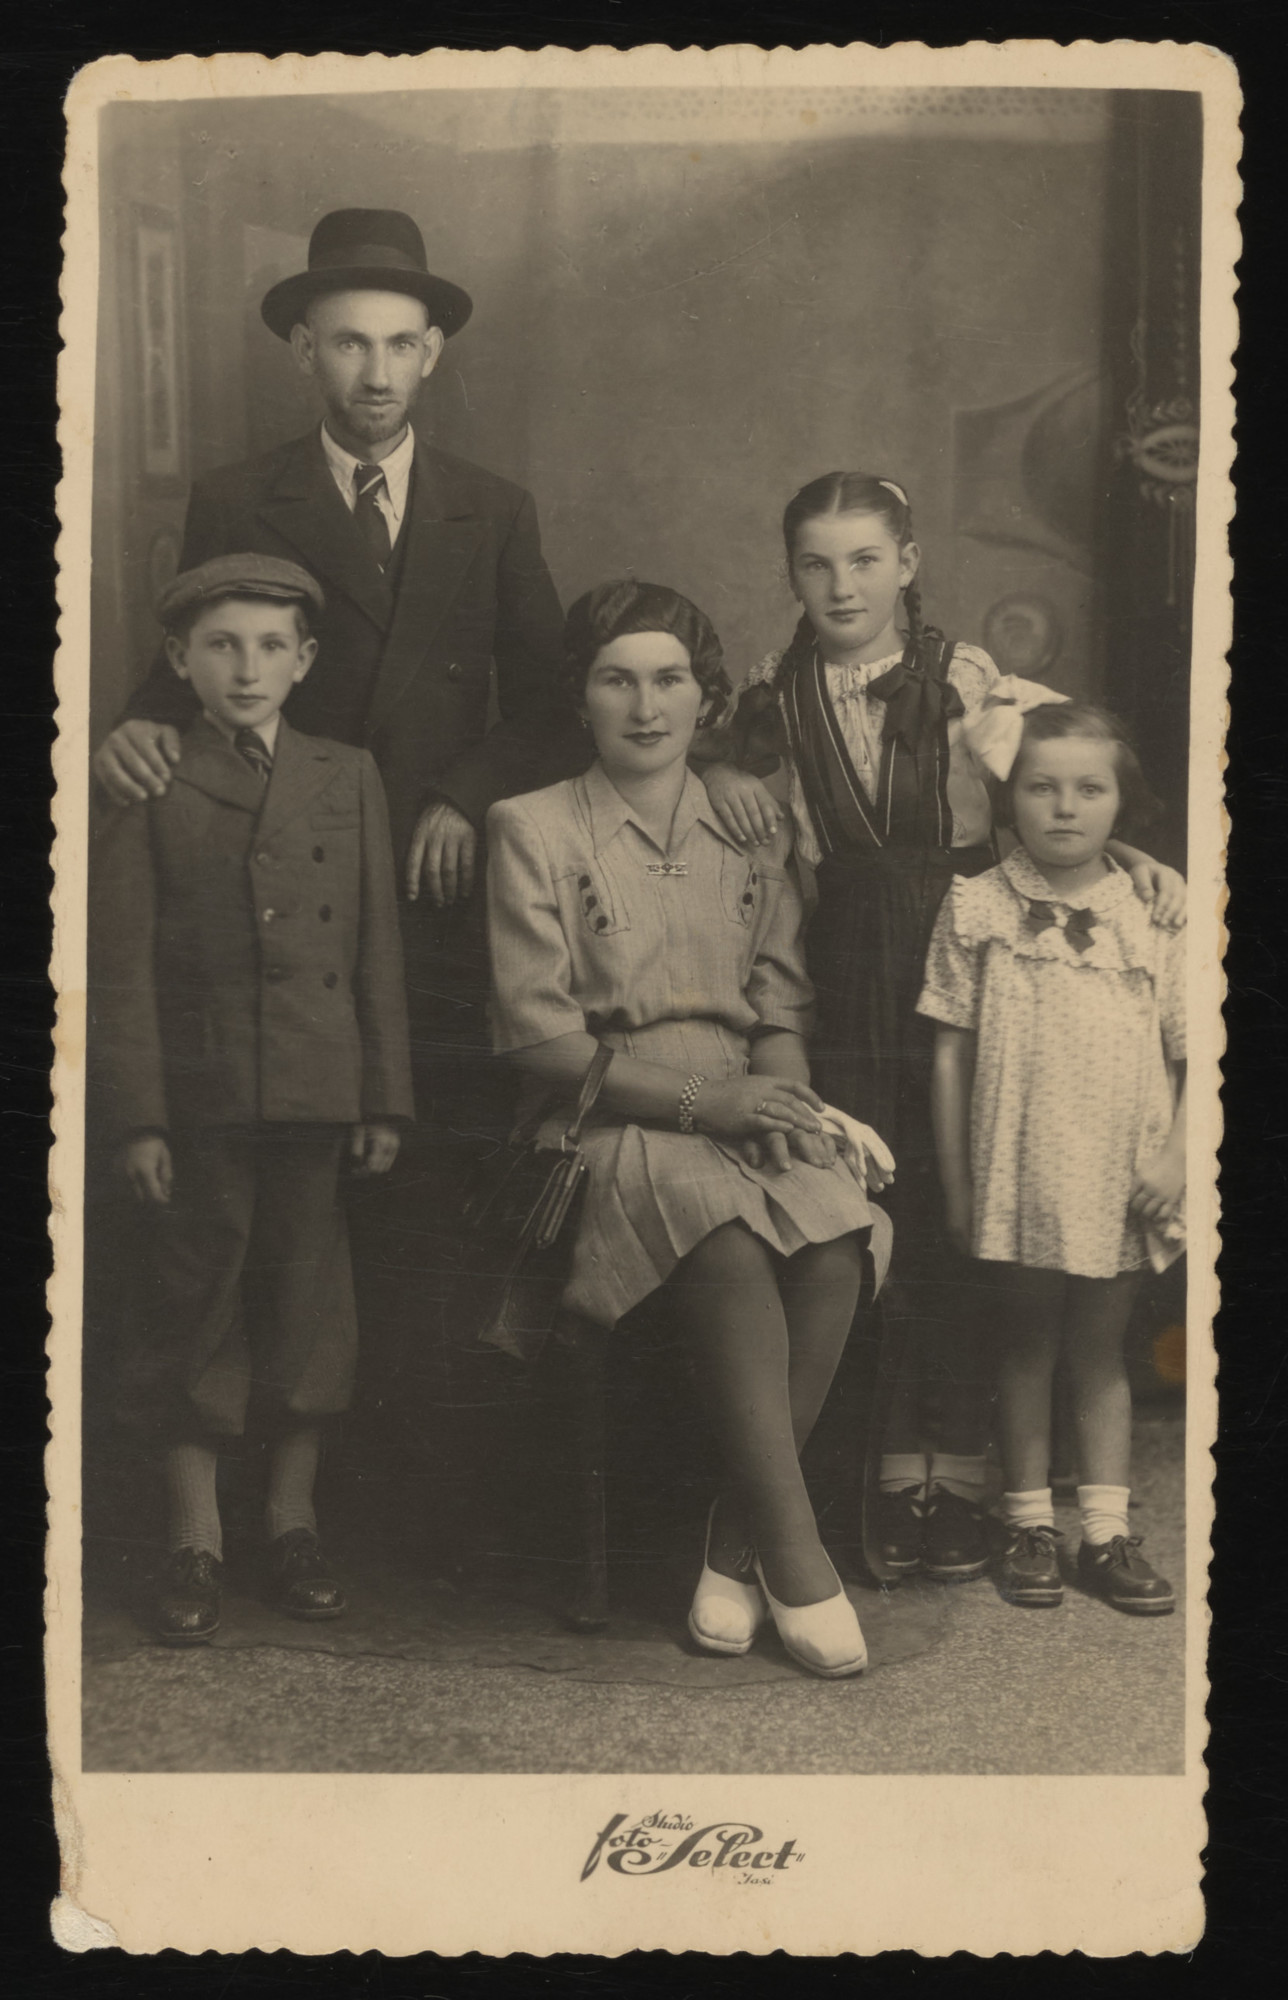 Postwar studio portrait of the Spitzer family.  Pictured from left to right are Nathan, Anton, Fany, Sara and Lily Spitzer.